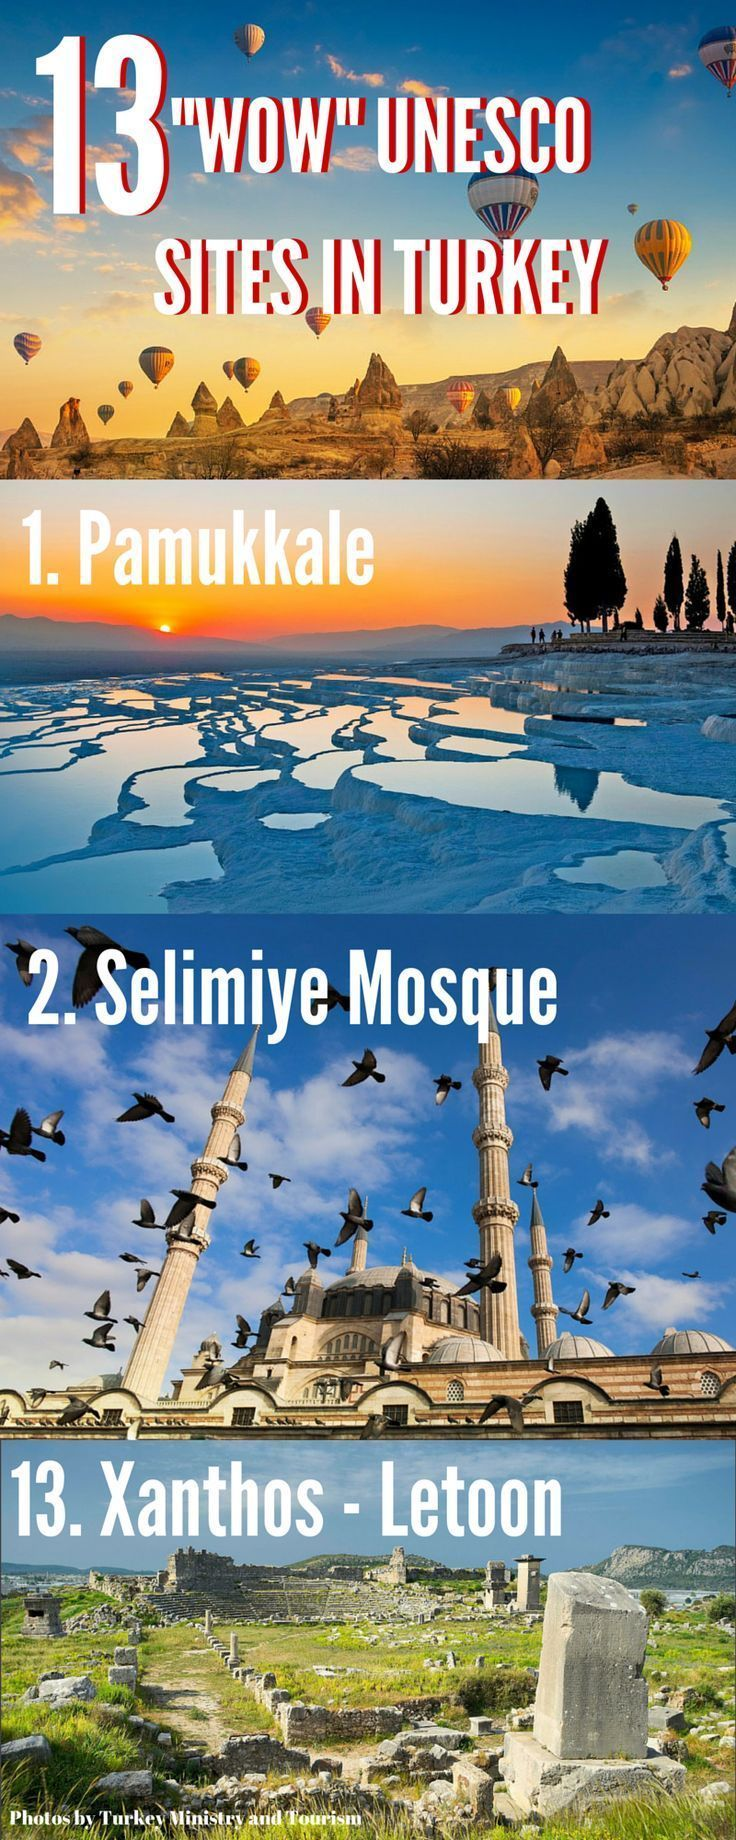 "Check out 13 amazing UNESCO sites in Turkey that will make you go ""Wow."" For more amazing pictures of Turkey follow @turkeyhome. Make sure you go on your great #TurquoiseHunt this summer."